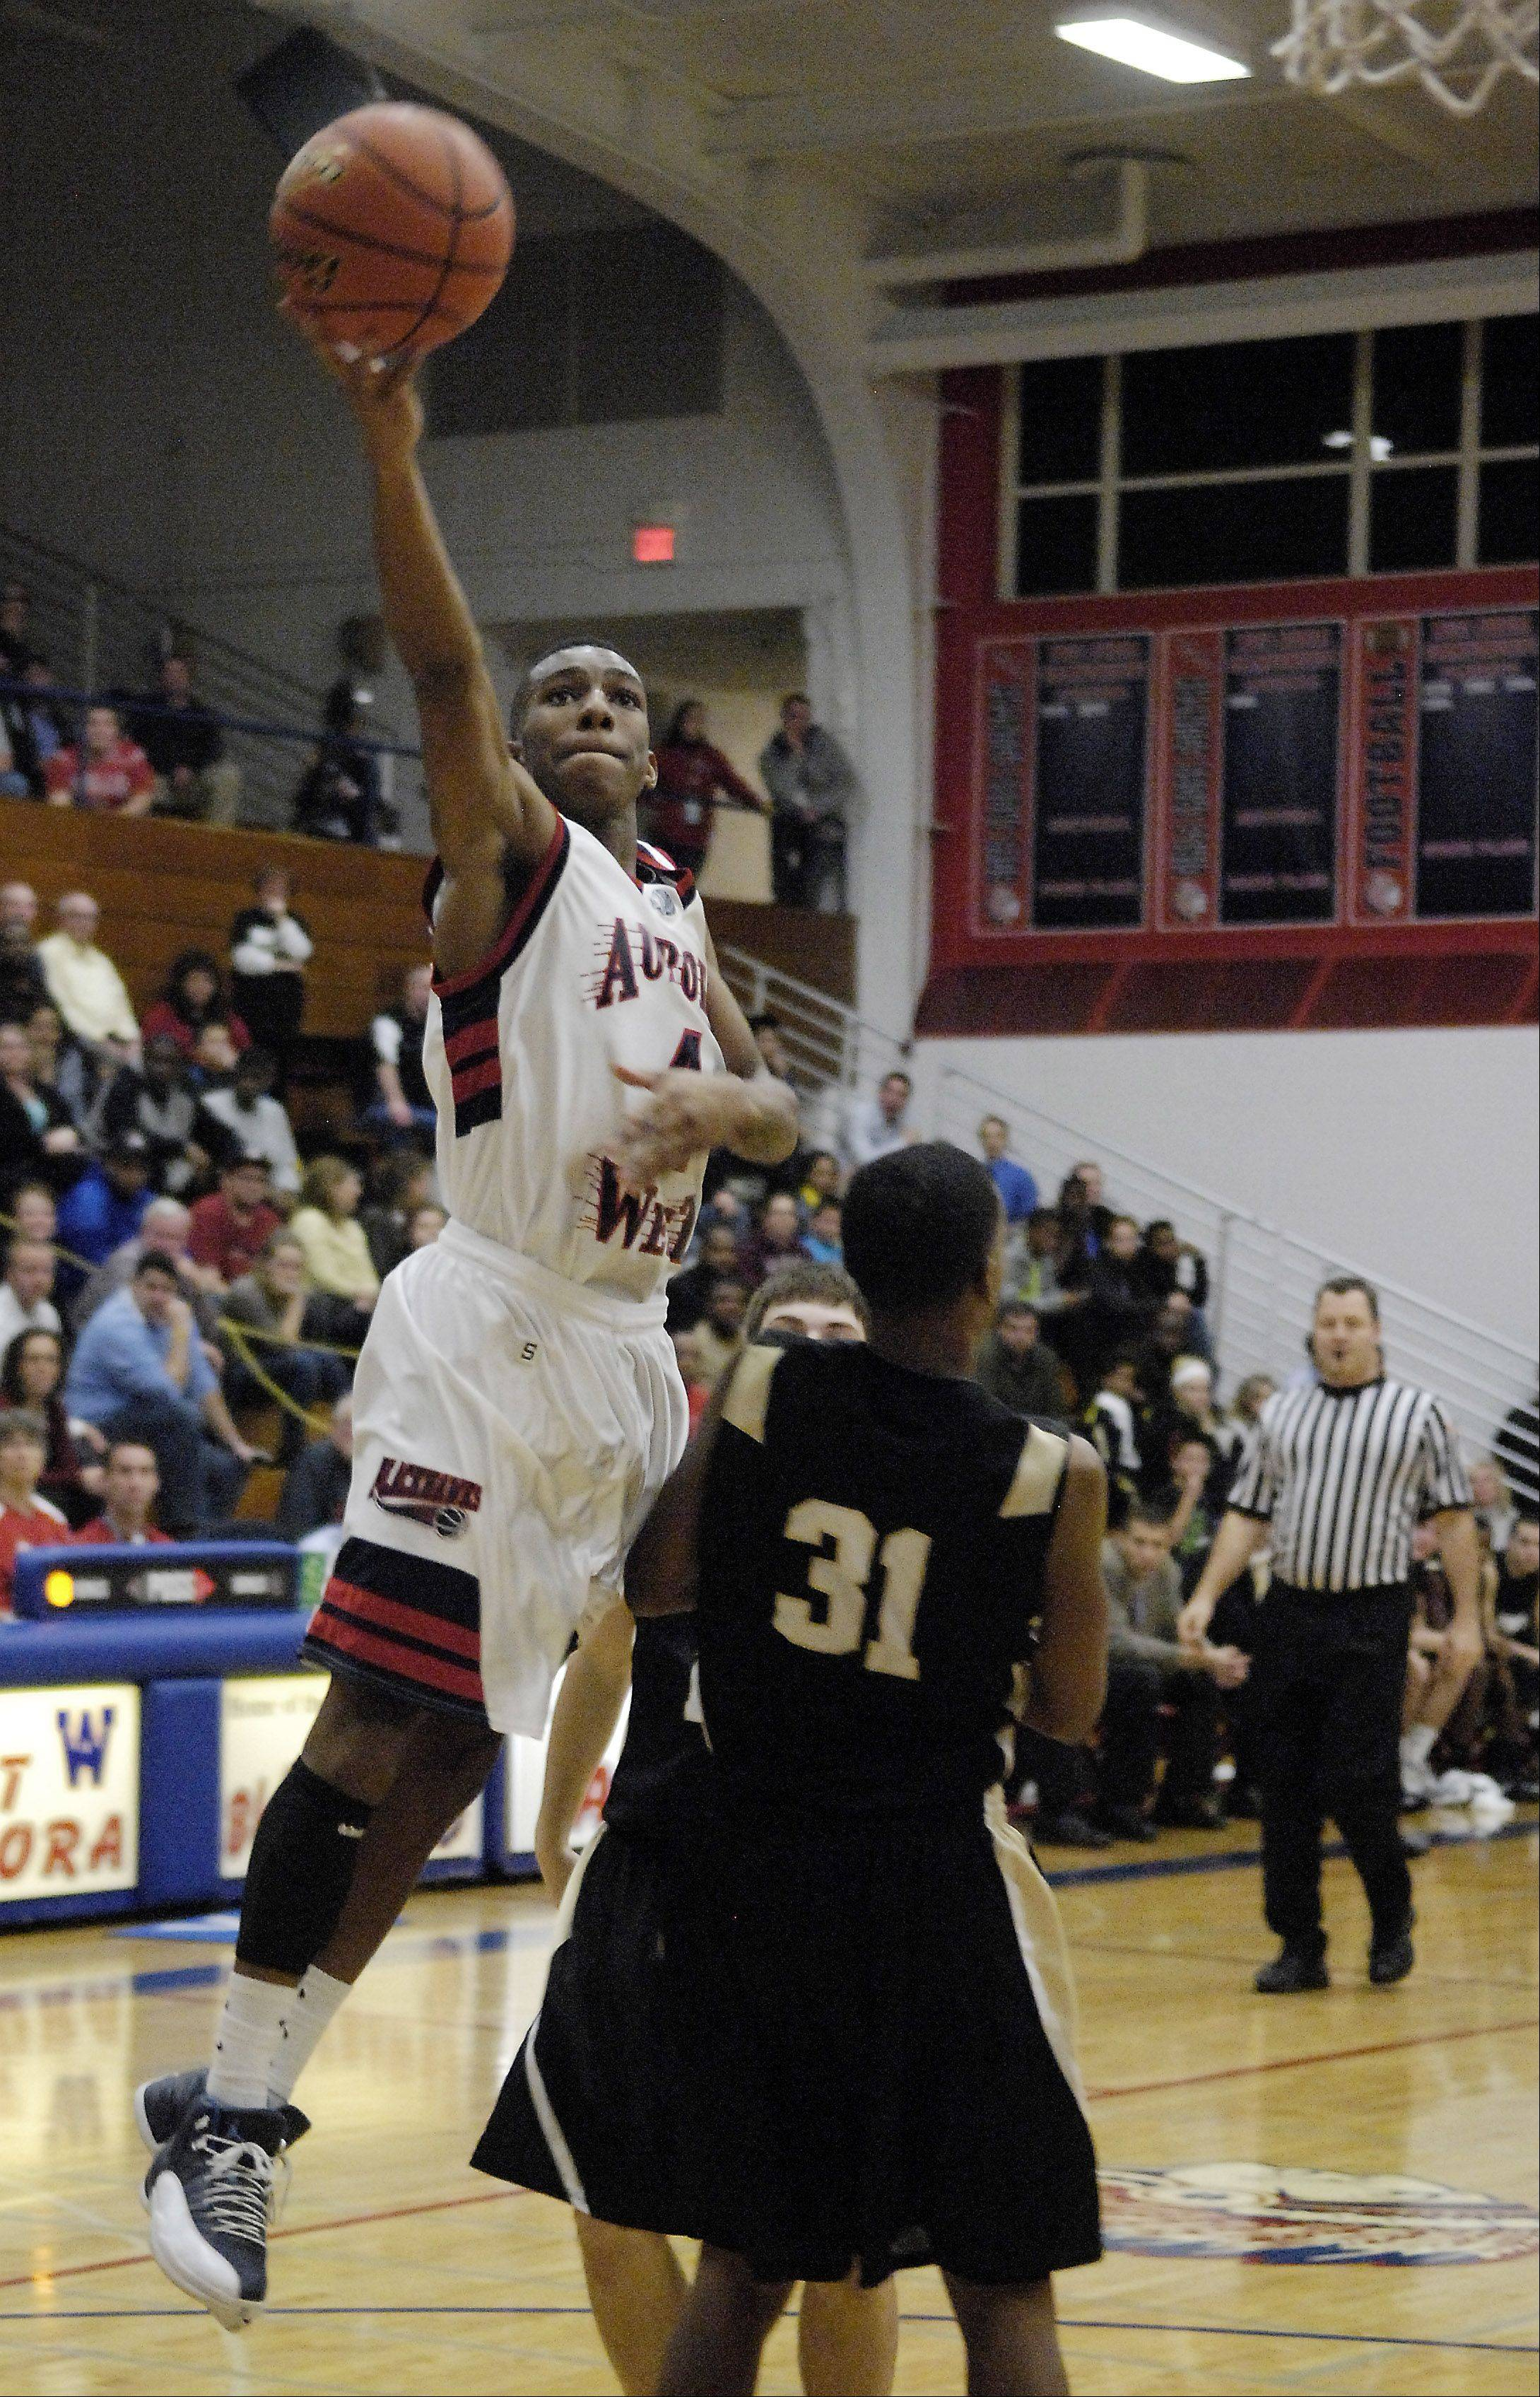 West Aurora's Jayquan Lee glides in for a layup over Glenbard North's Chavares Flanigan .